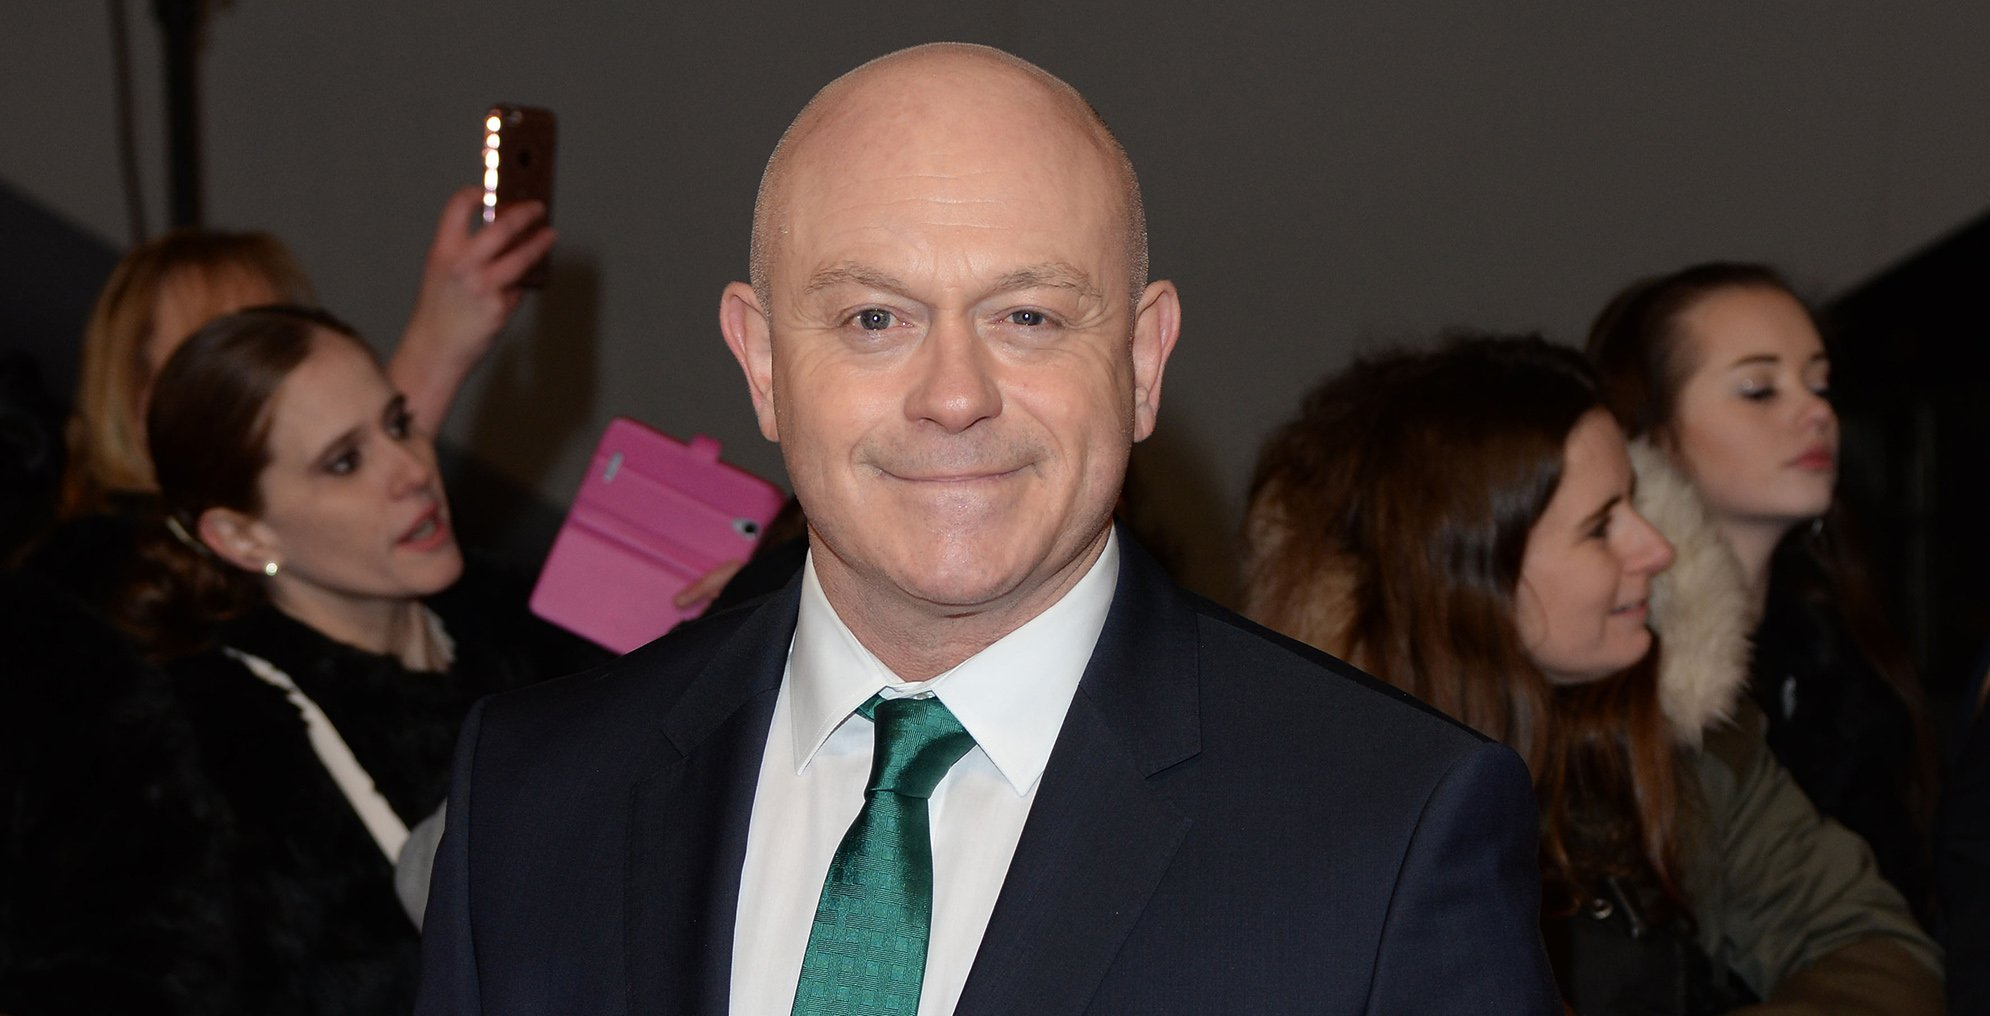 Ross Kemp slammed for upcoming NHS coronavirus ward documentary